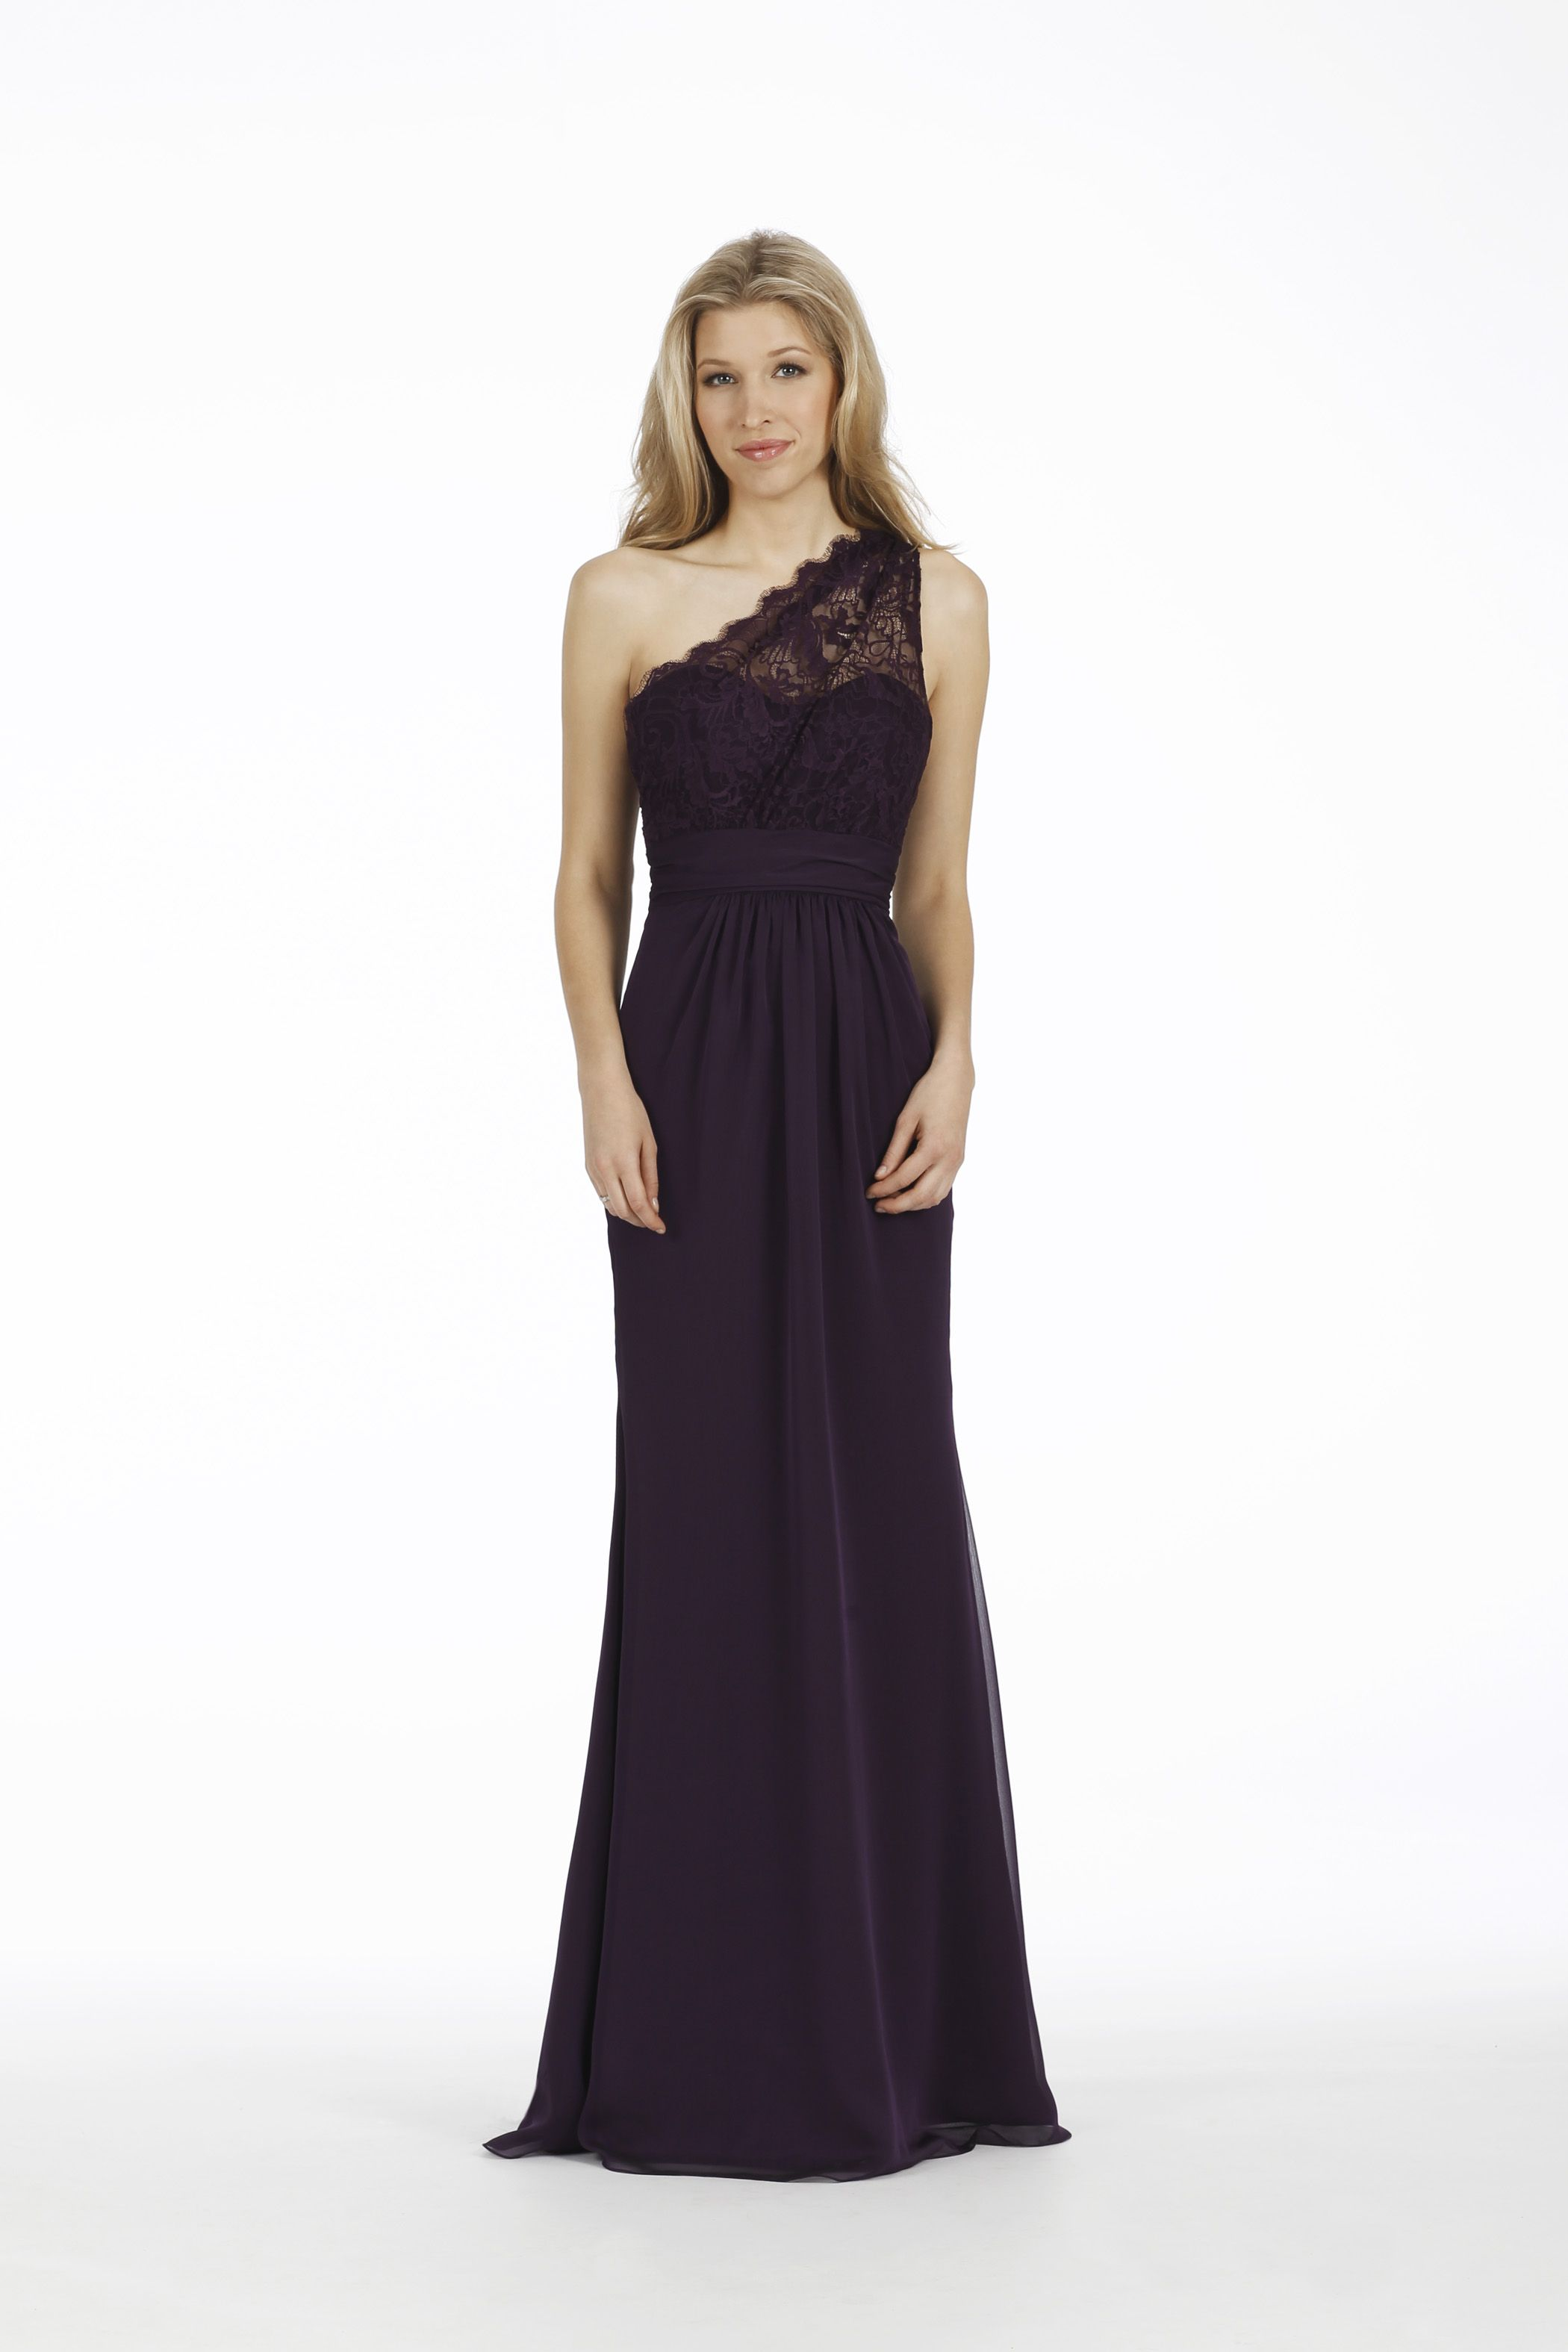 Shop Jim Hjelm Bridesmaid Dress - 5474 in Lace at Weddington Way ...